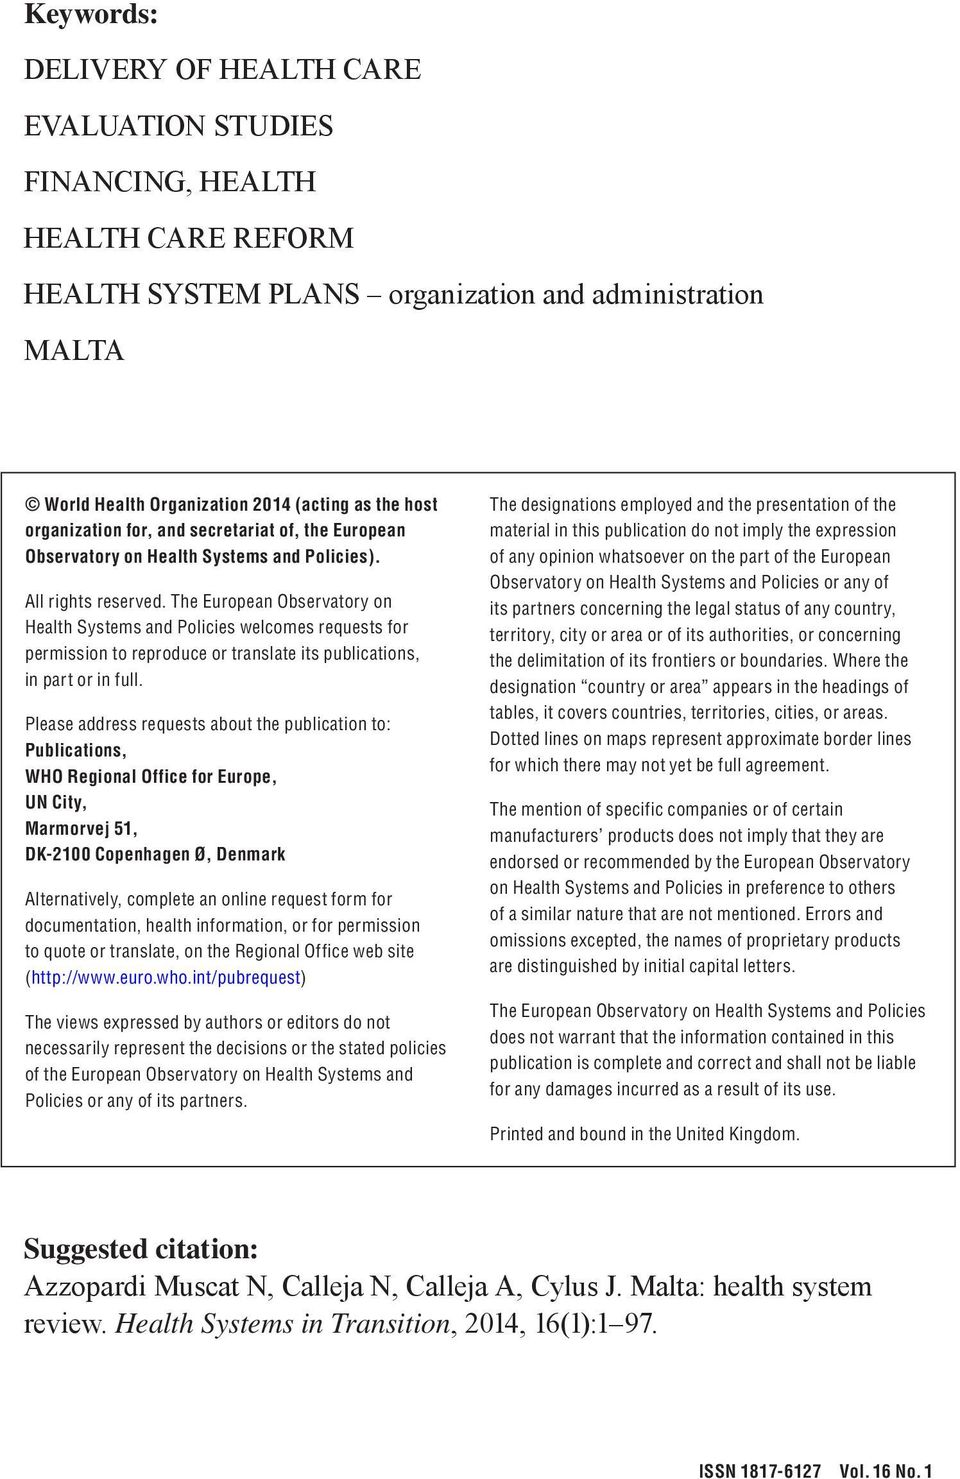 The European Observatory on Health Systems and Policies welcomes requests for permission to reproduce or translate its publications, in part or in full.